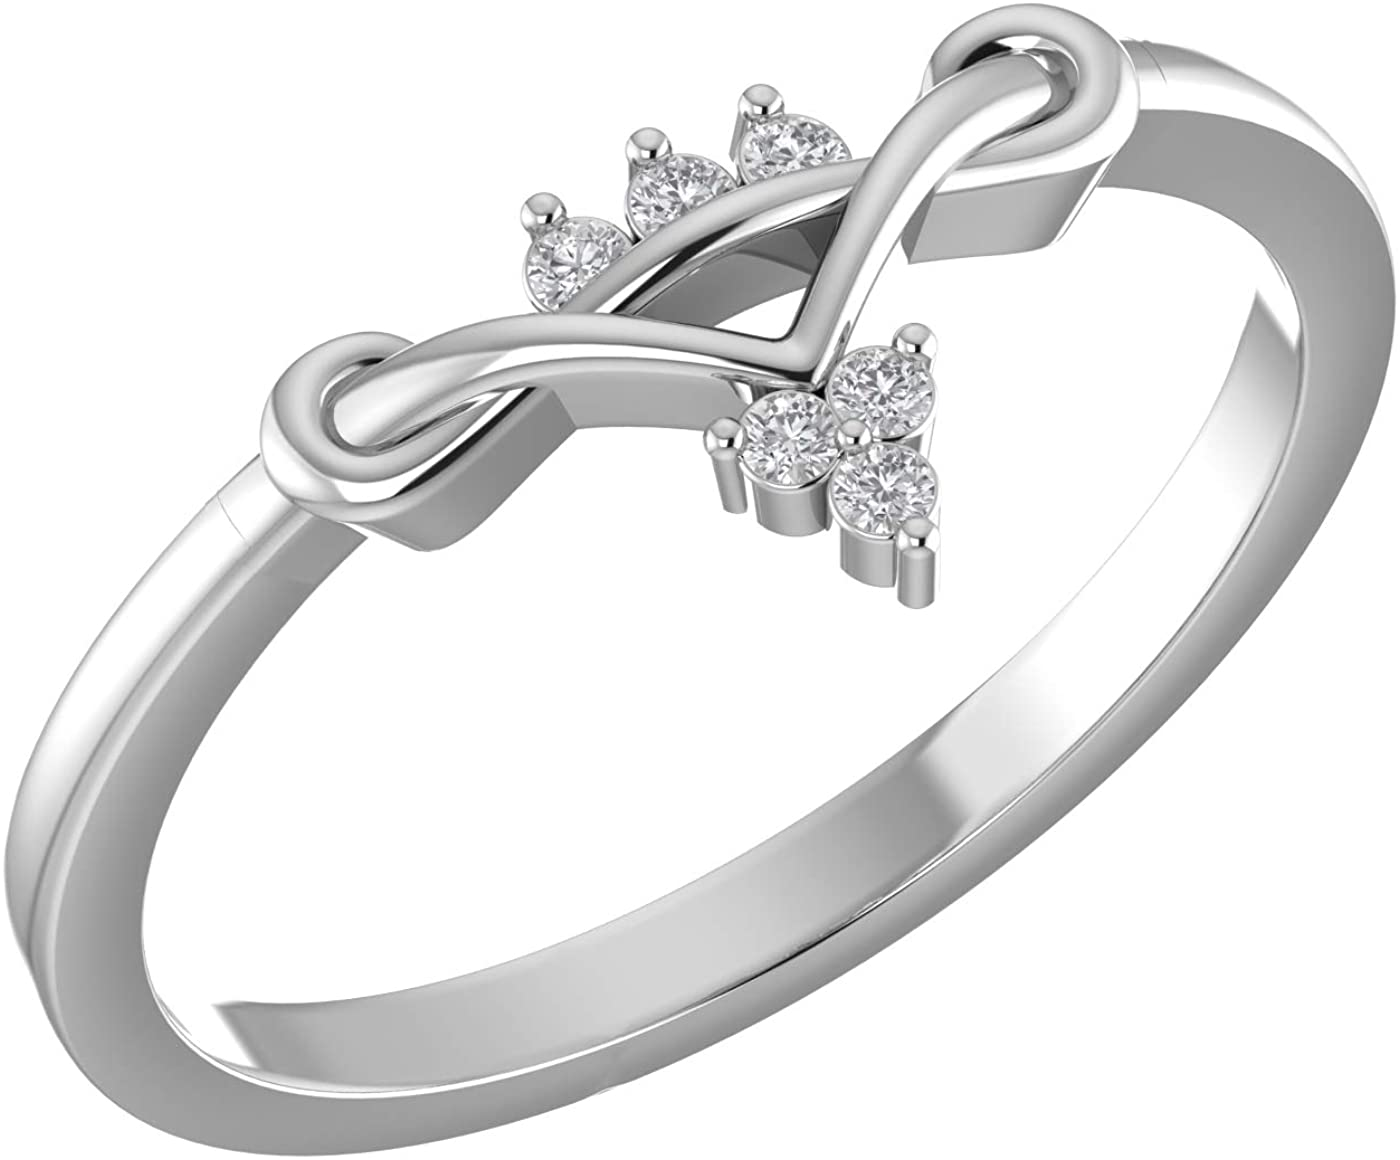 Amayra Diamond Ring 0.05 CTW-6 Natural Round Stones Set in 925 Sterling Silver- Brilliant Cut- Perfect for Bridal Promise Ring,Anniversary,Daily wear or Parties (Color-GH Clarity-VS-SI)